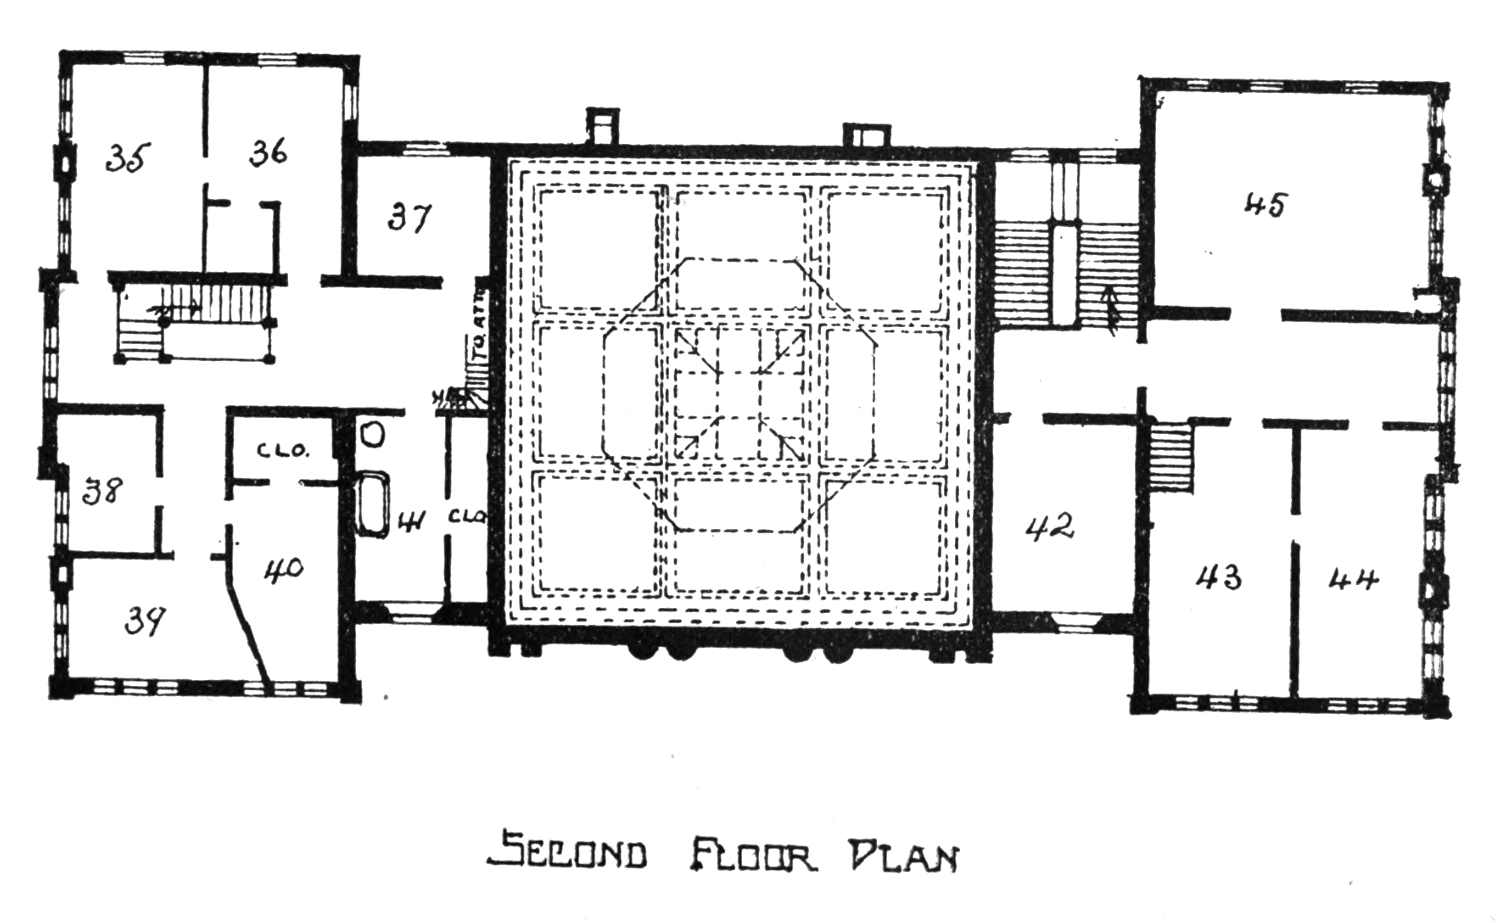 2078 Square Feet 4 Bedroom 3 Bathroom 1 Garage Modern 38303 additionally Hobbit House 2 moreover Earthbagplans wordpress also Royal Courts Of Justice Floor Plan together with Round House Plans. on cabin yurt homes